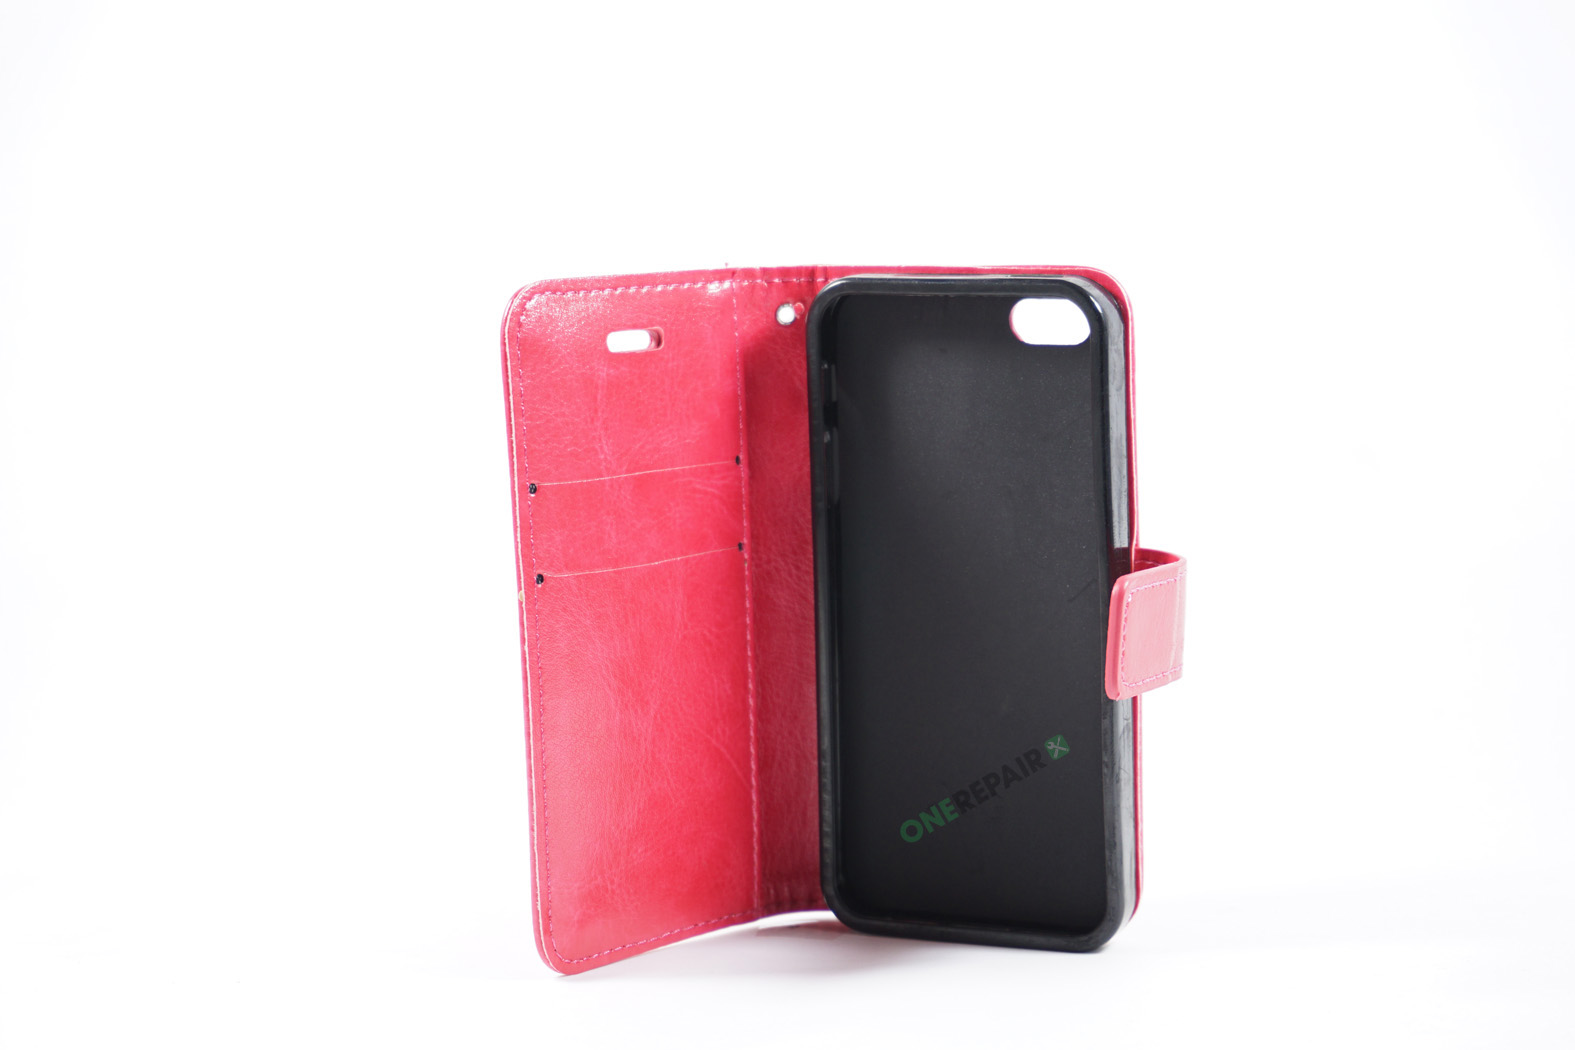 350508_iPhone_5_5S_SE_Flipcover_Cover_Lyseroed_Pink_Pung_OneRepair_WM_00002